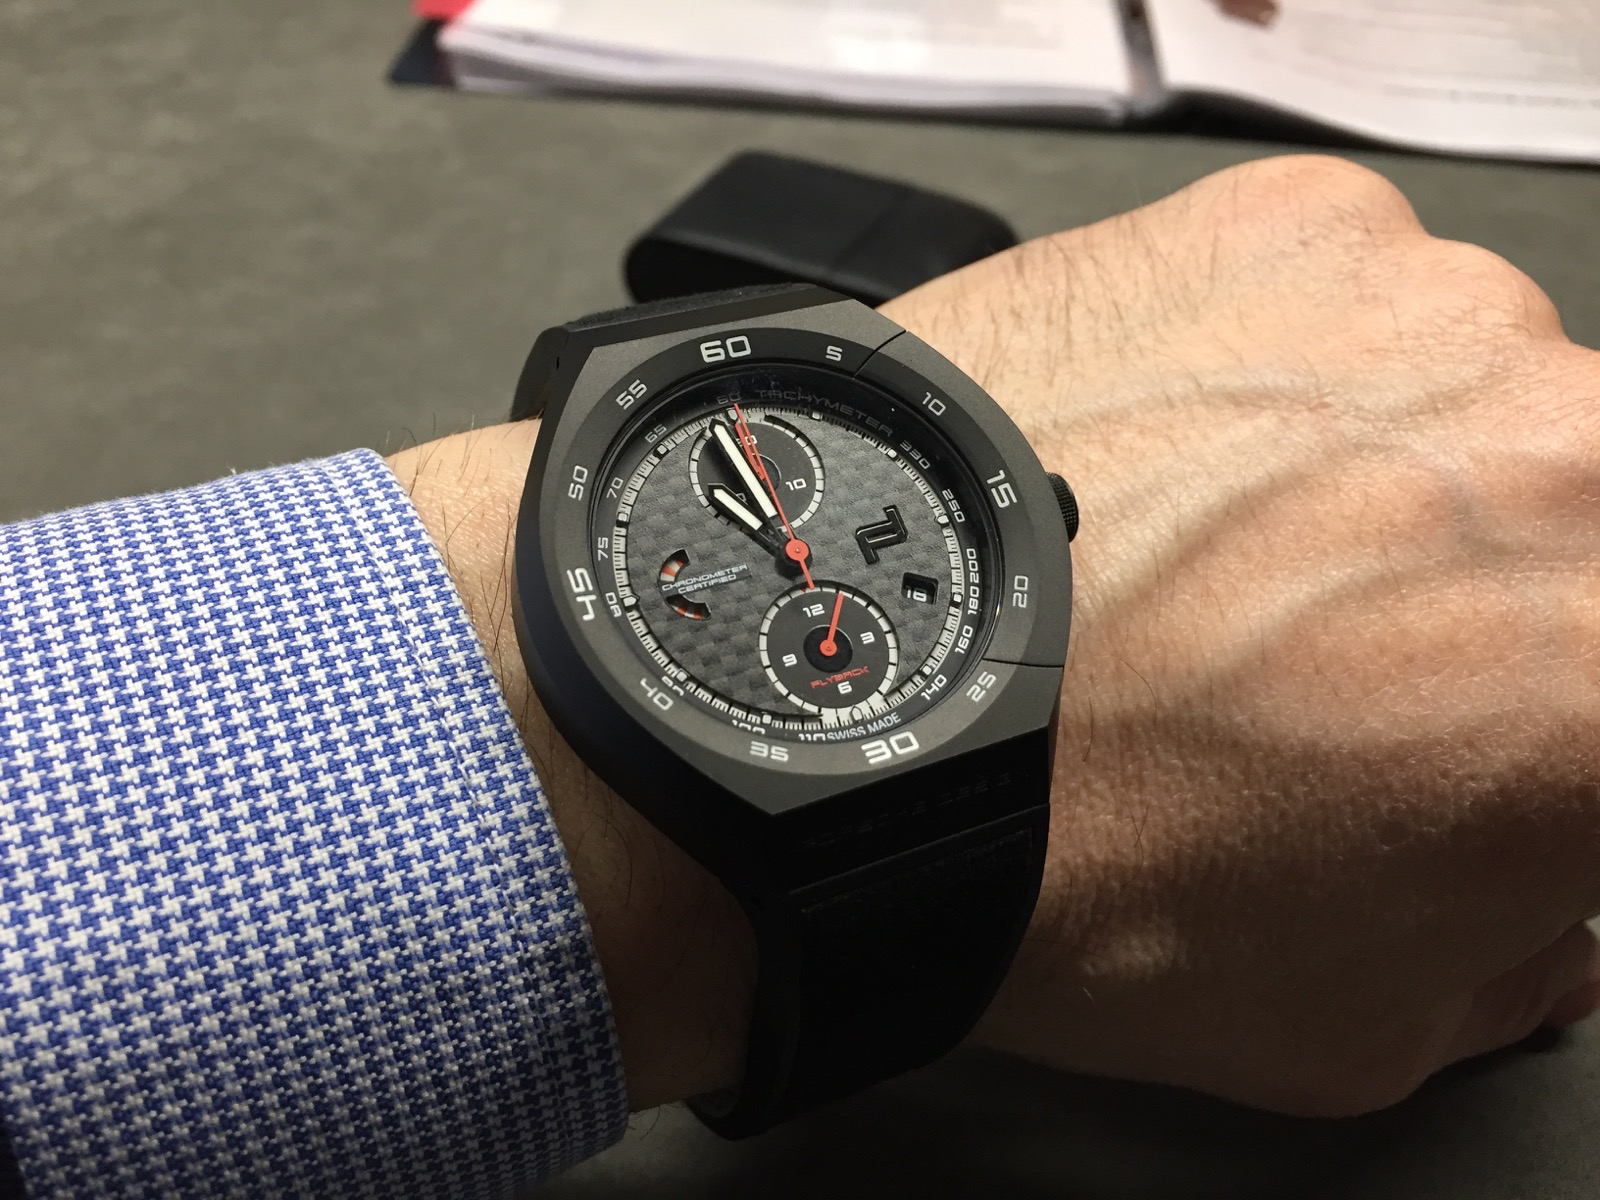 Porsche Design Monobloc Actuator Chronotimer Flyback Limited Edition